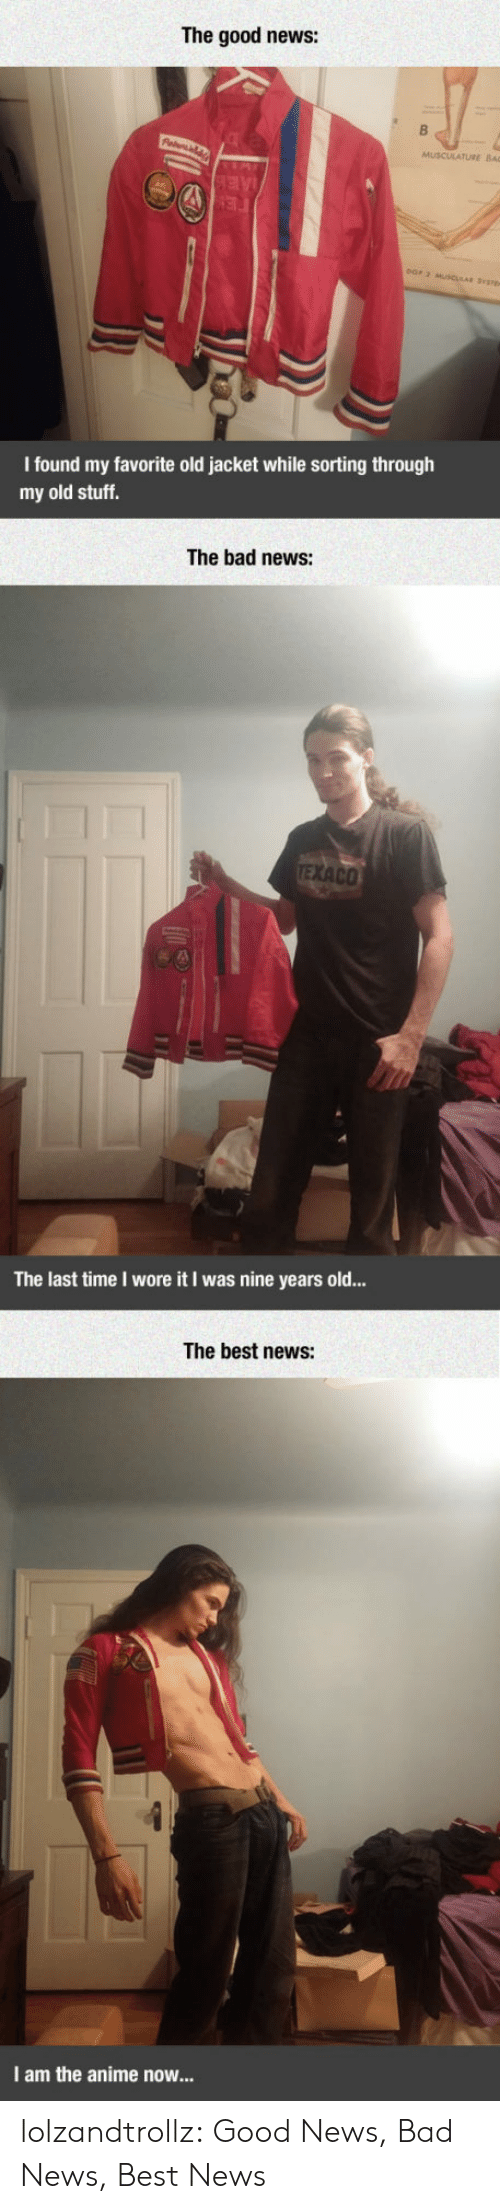 Wore It: The good news:  AE  FE  eOr 2 MUSCULAR SYt  I found my favorite old jacket while sorting through  my old stuff.  The bad news:  TEXACO  The last time I wore it I was nine years old...  The best news:  I am the anime now... lolzandtrollz:  Good News, Bad News, Best News